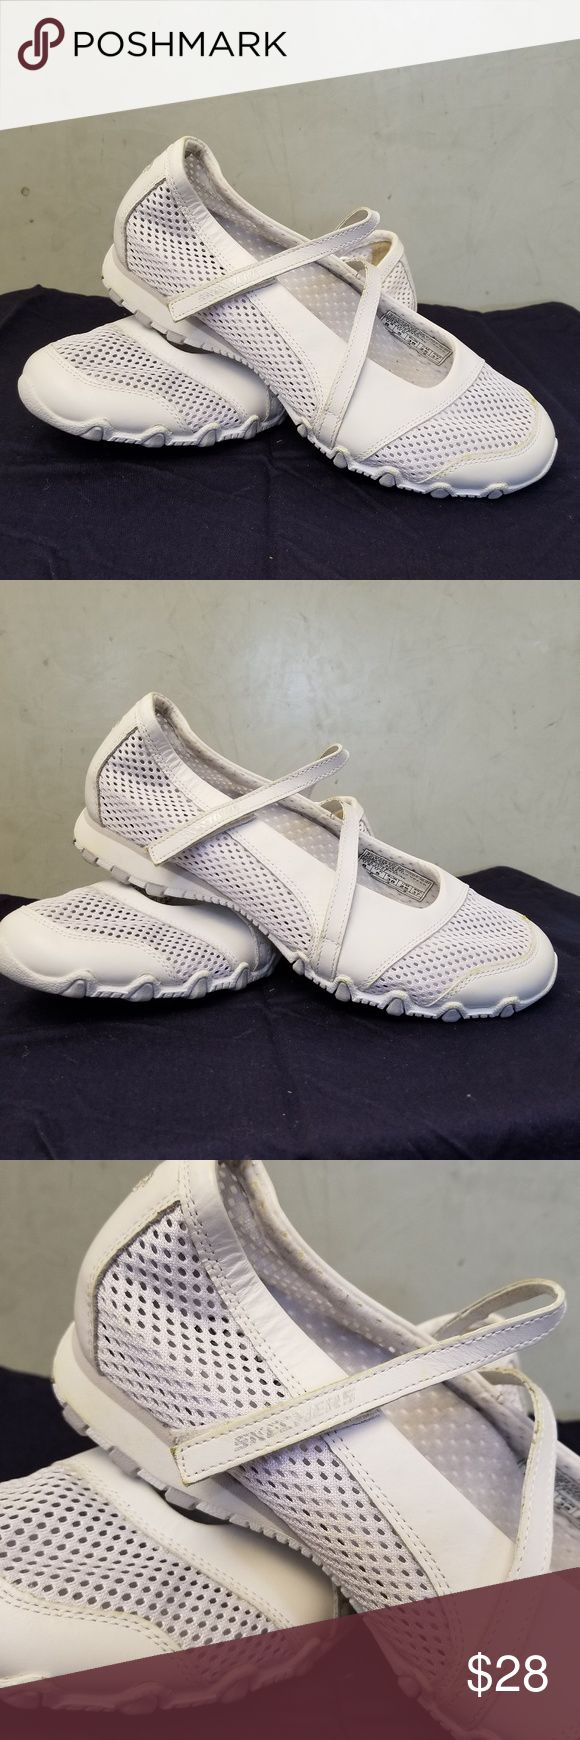 Skechers white sneakers NWOT brand new without tags white Skechers sneaker shes. has a little yellowing on the feel part shown in pic 4 Skechers Shoes Sneakers